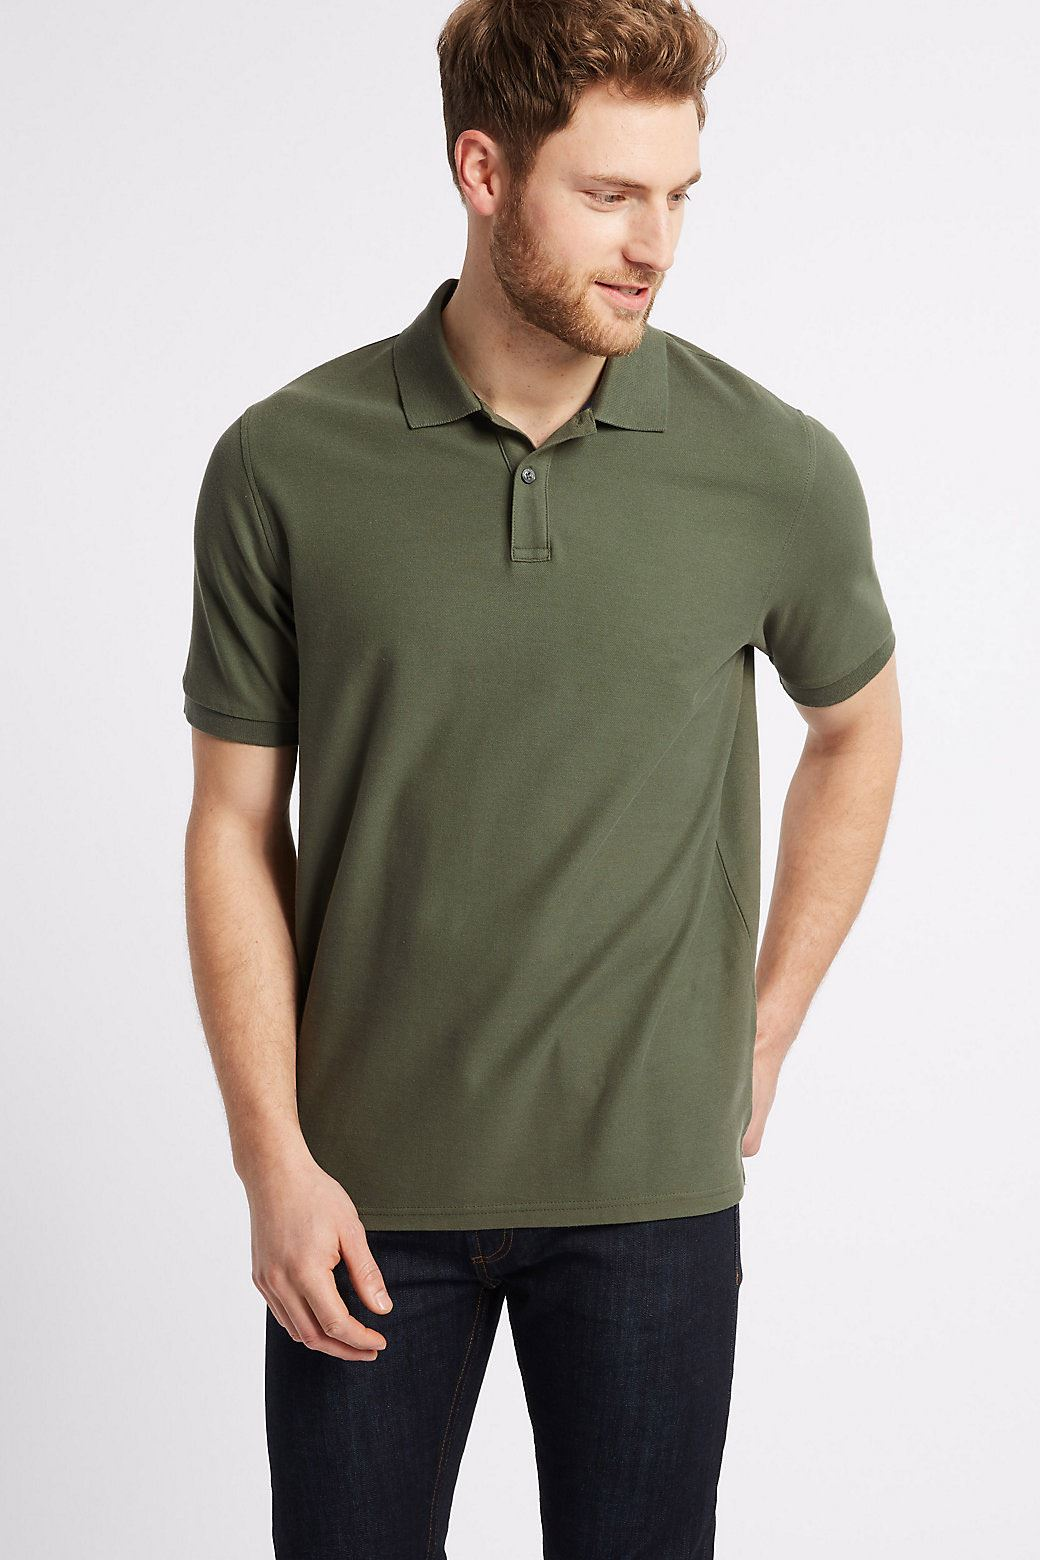 Ex-Marks-and-Spencer-Mens-Cotton-Pique-Polo-Shirt-NEW-Sizes-S-3XL thumbnail 12